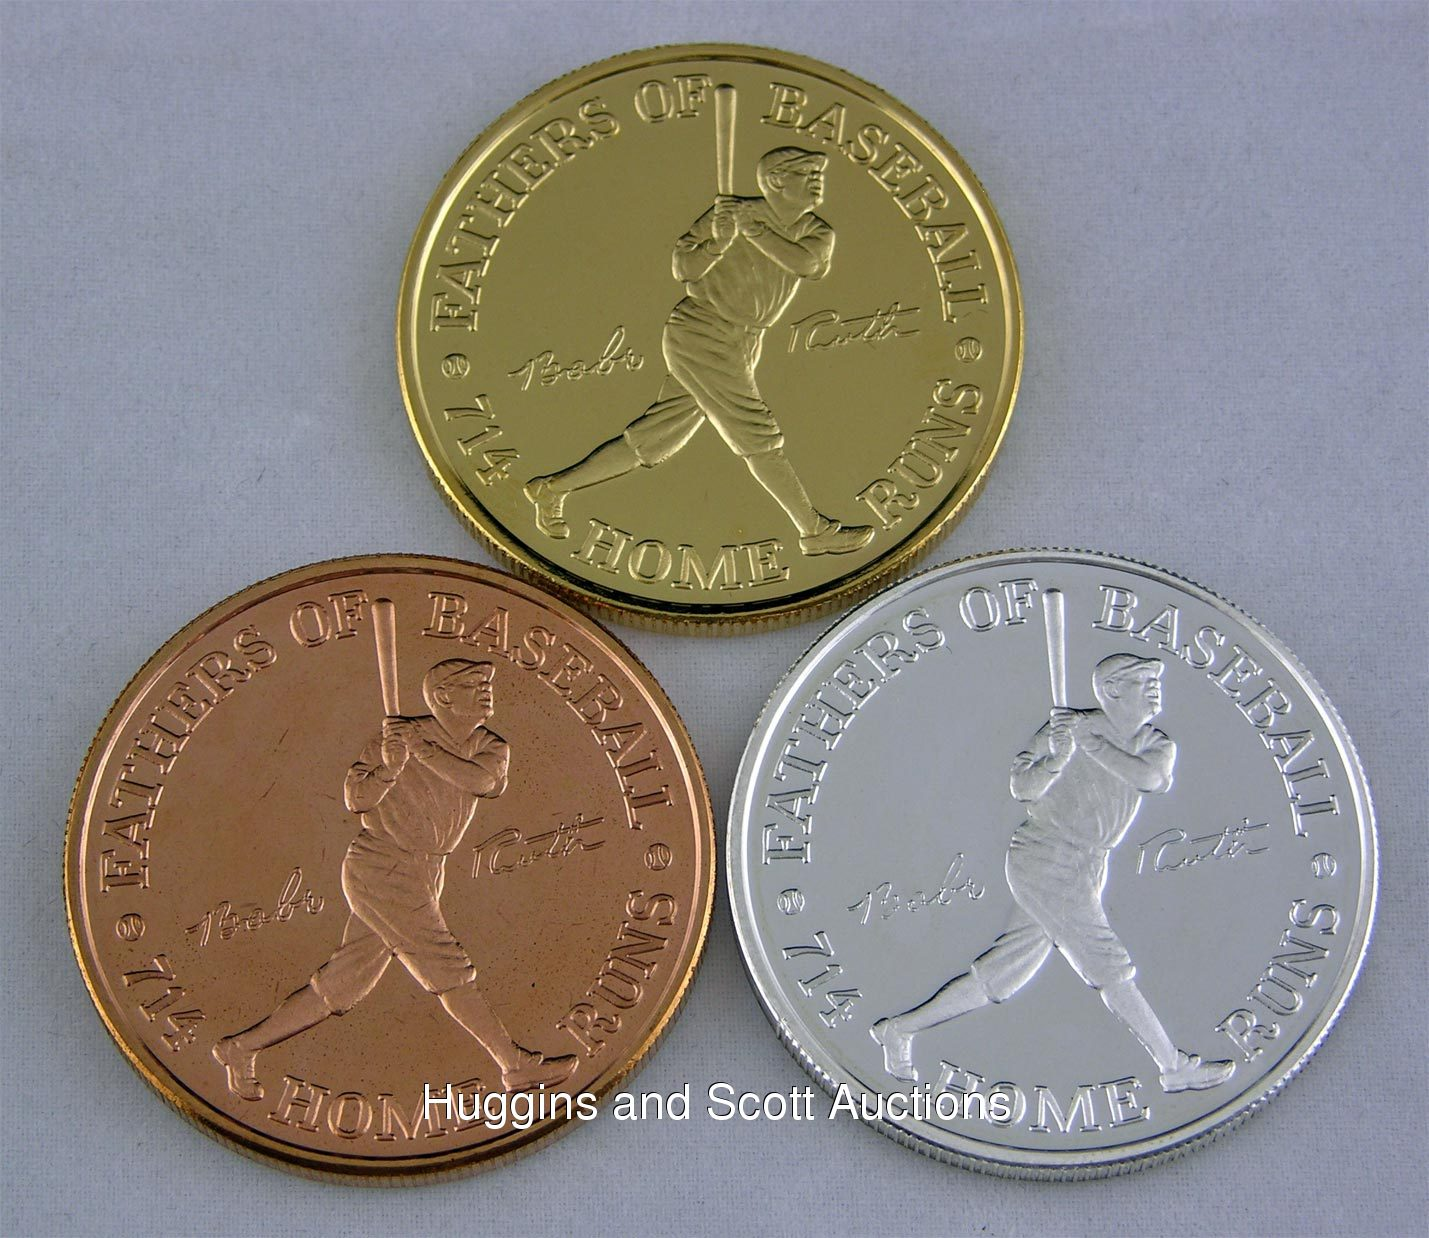 Babe Ruth Centennial 3 Coin Proof Set